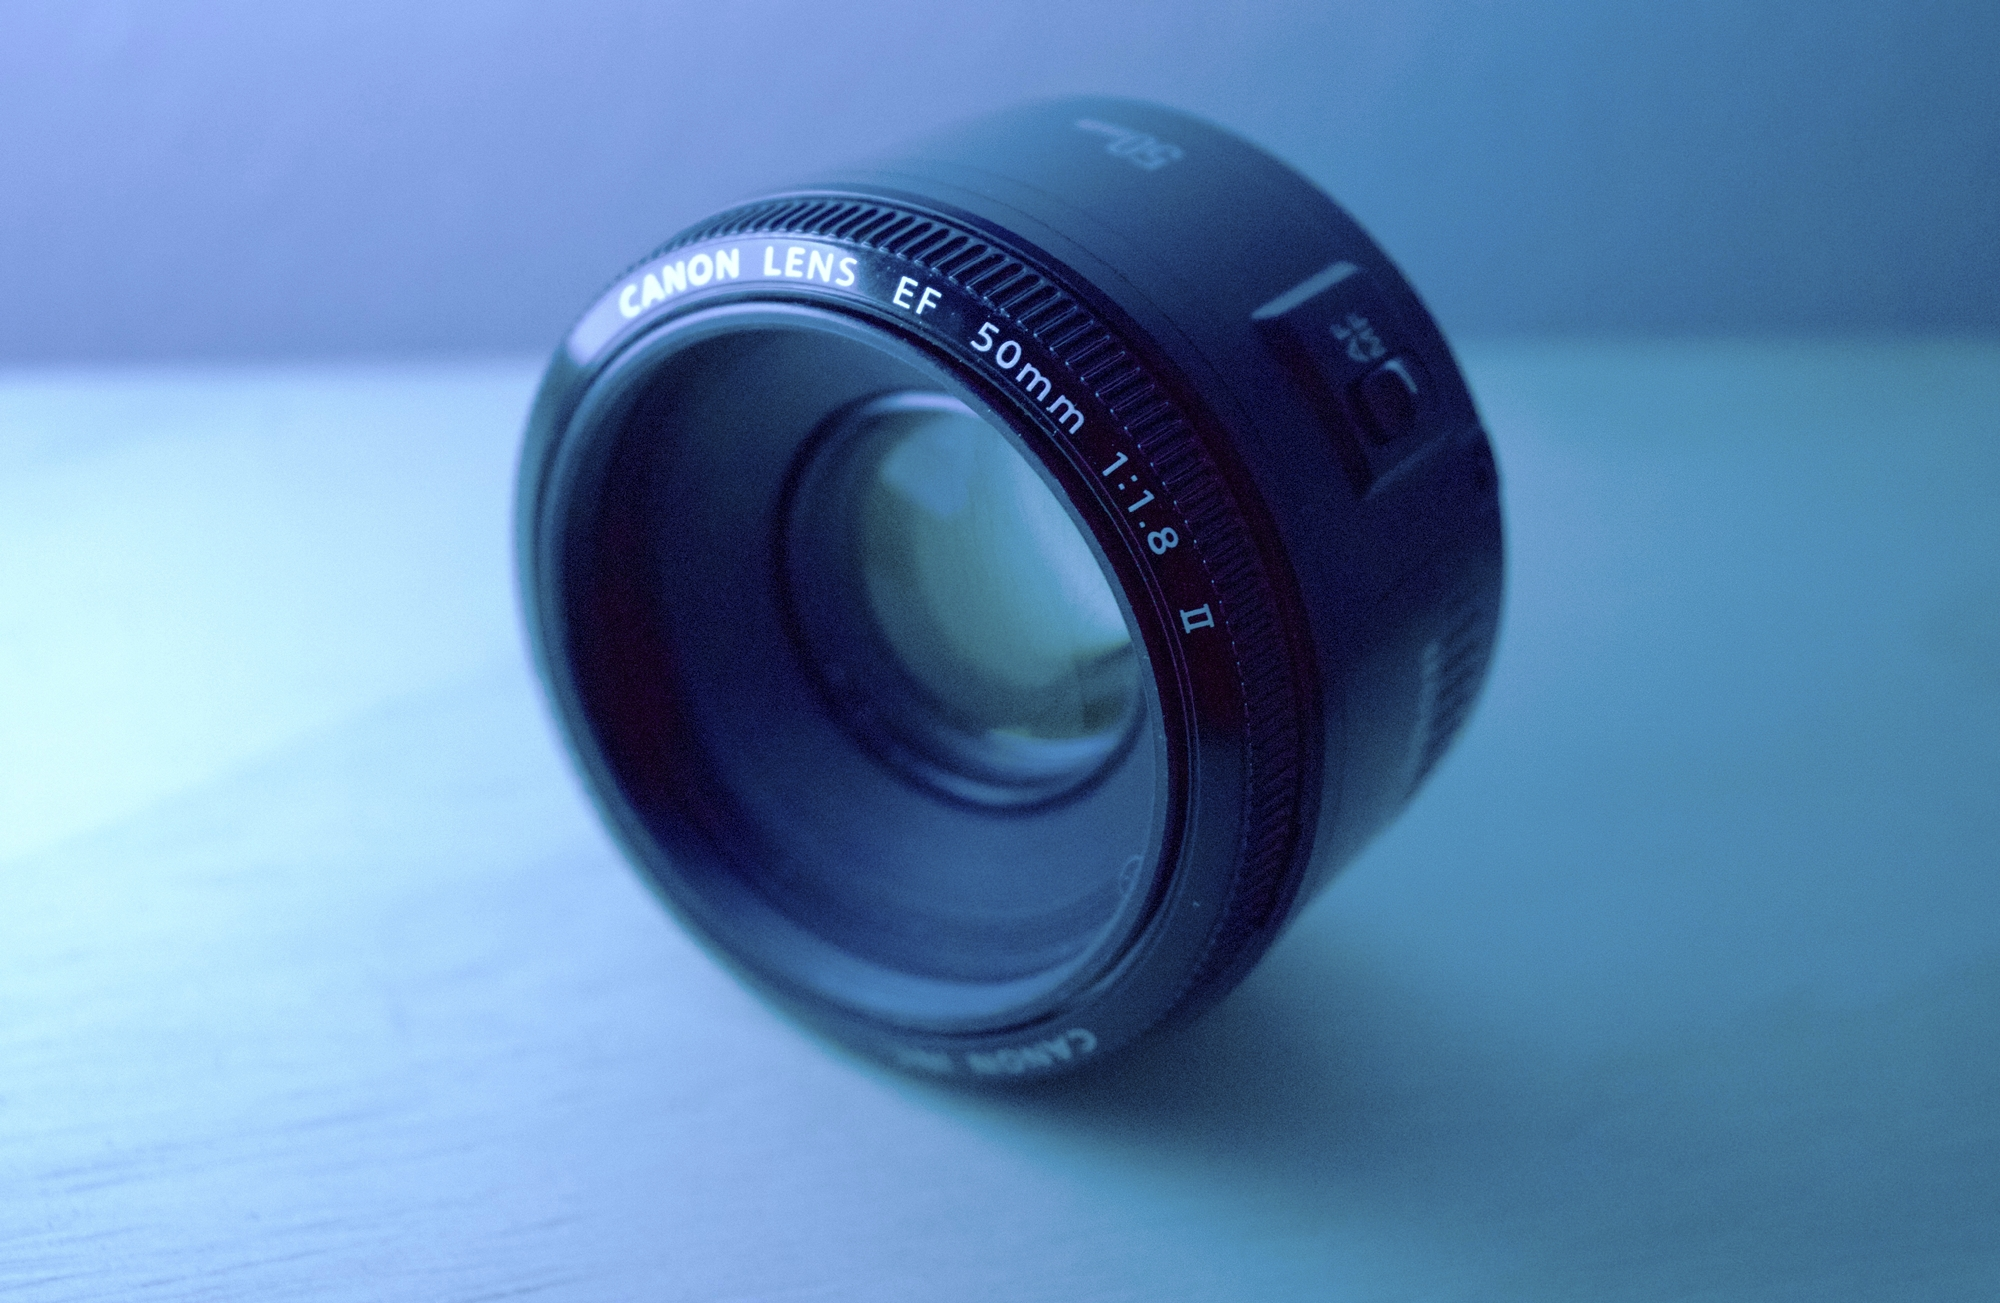 Which Canon 50mm Lens is the Best image